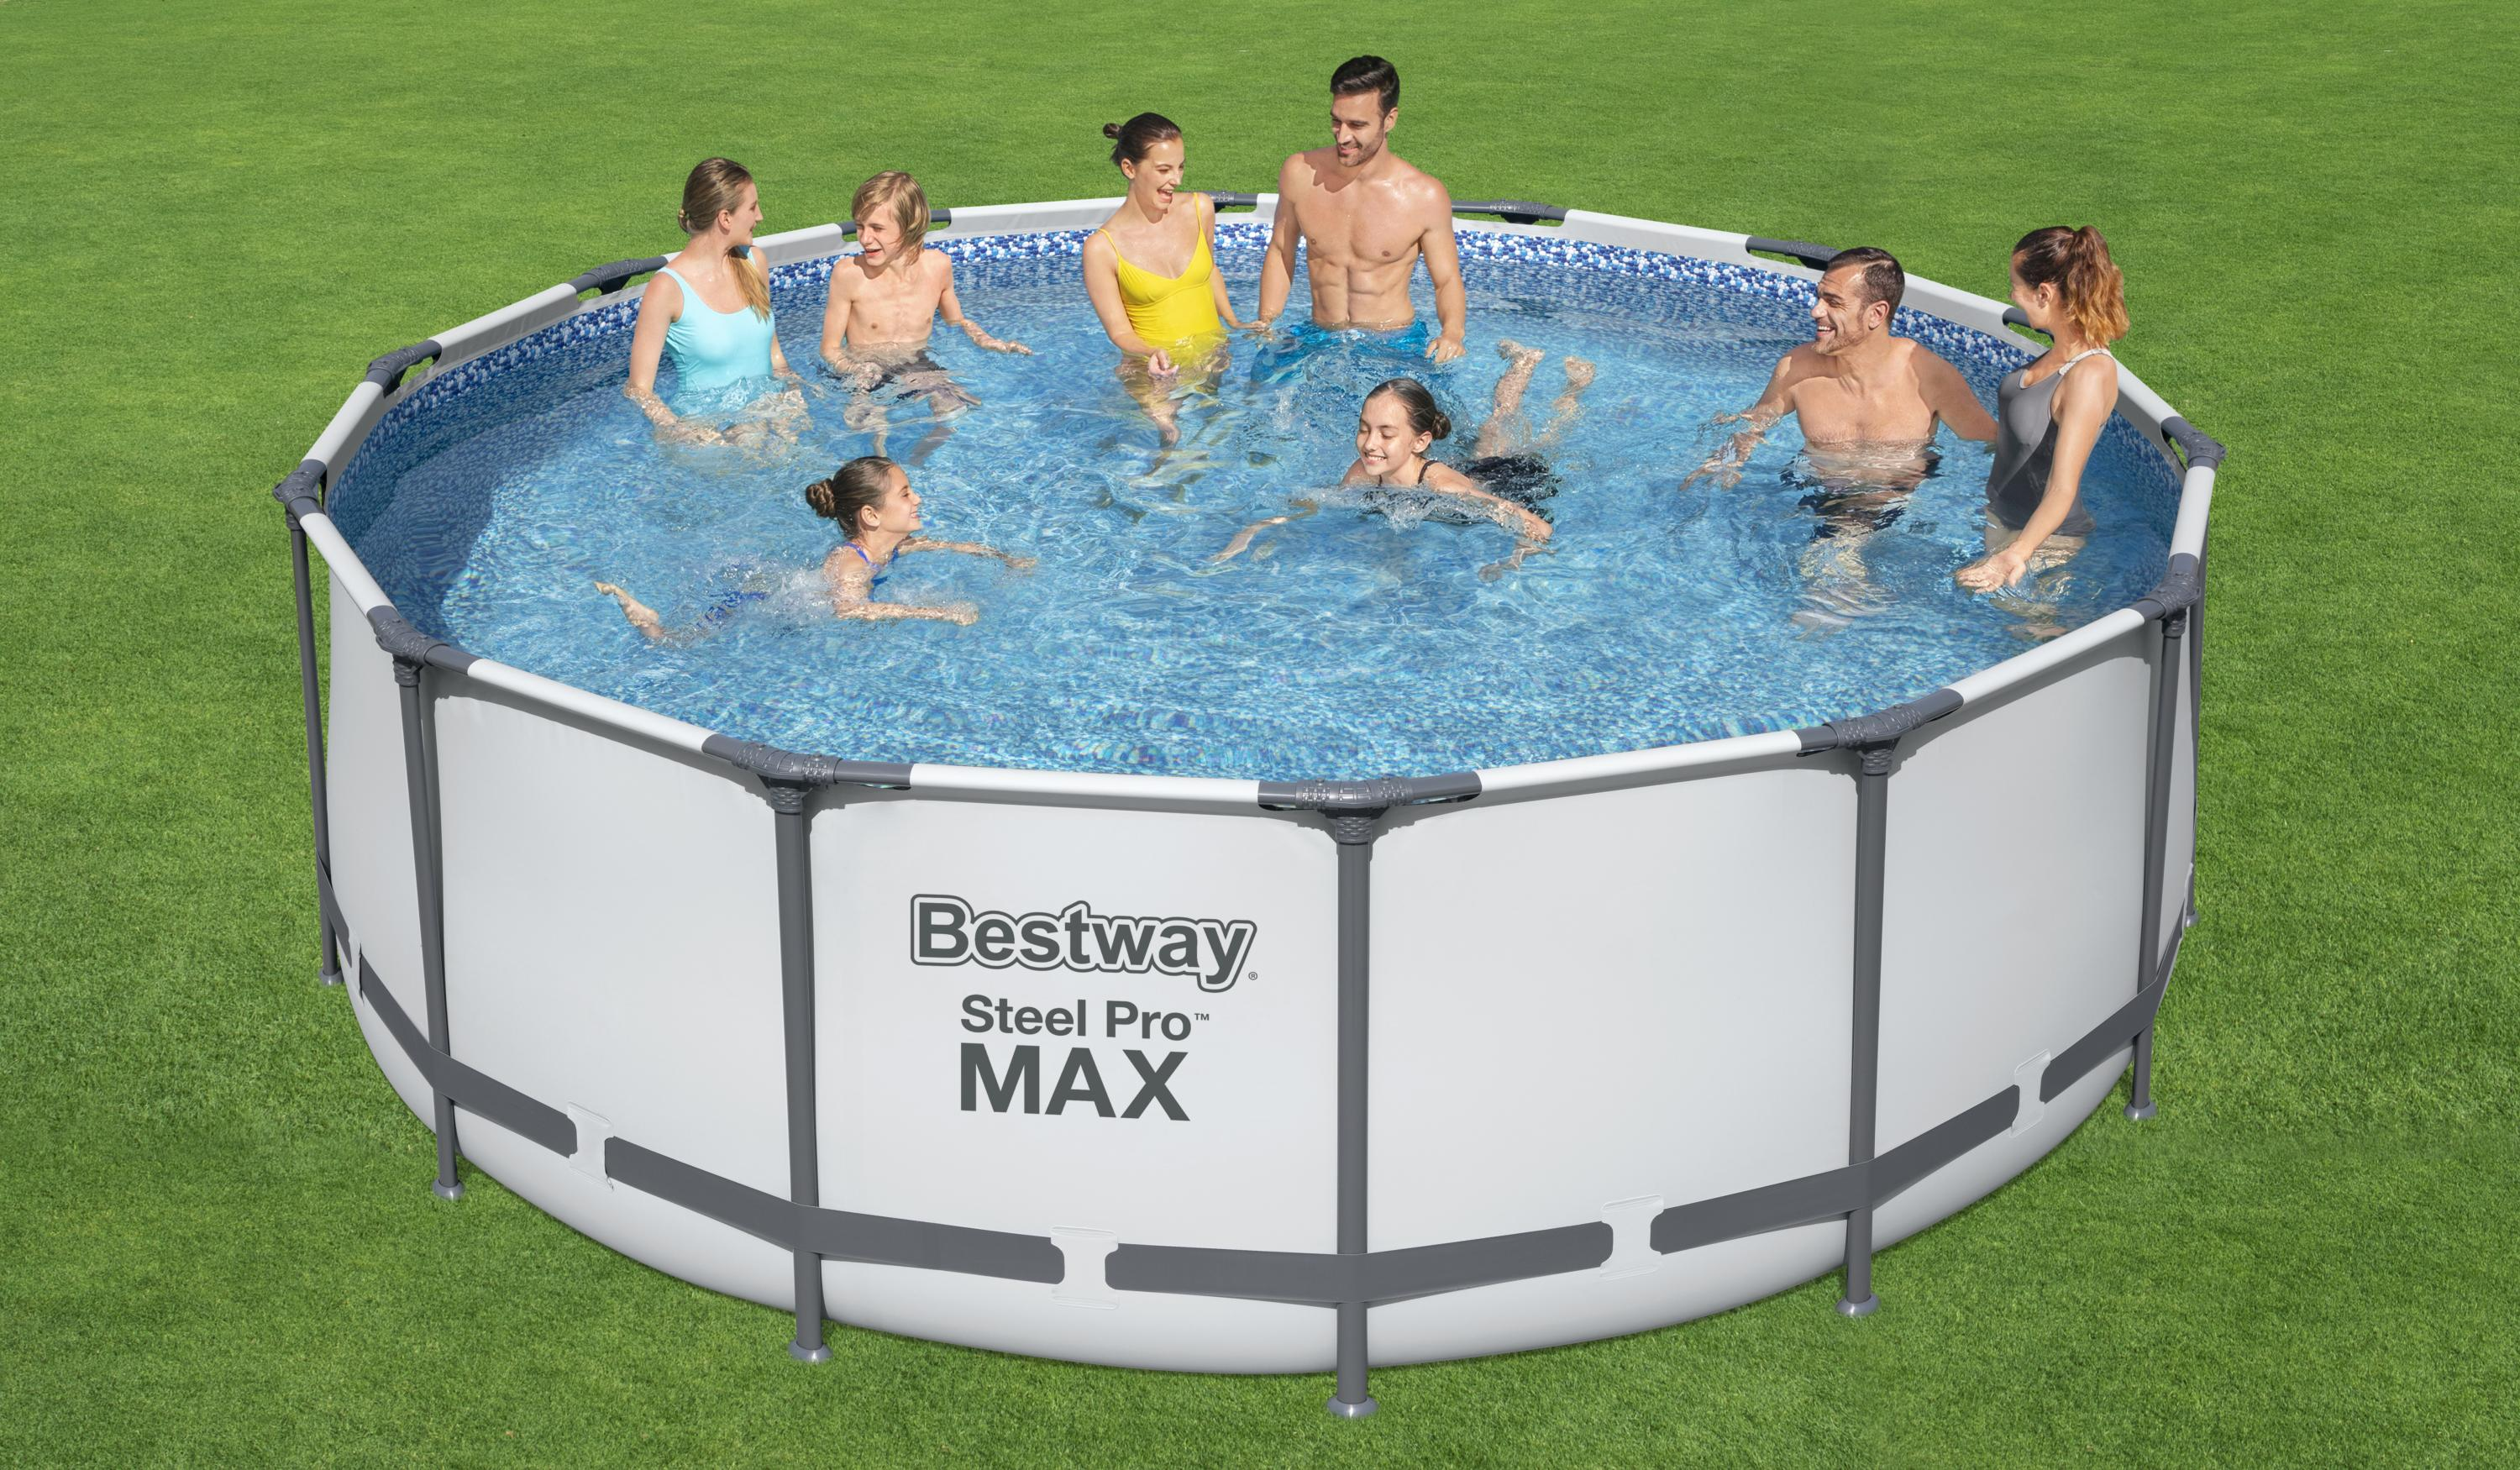 Bestway 5612X 4.27m x 1.22m Family Taille Round Metal Frame Swimming Pools